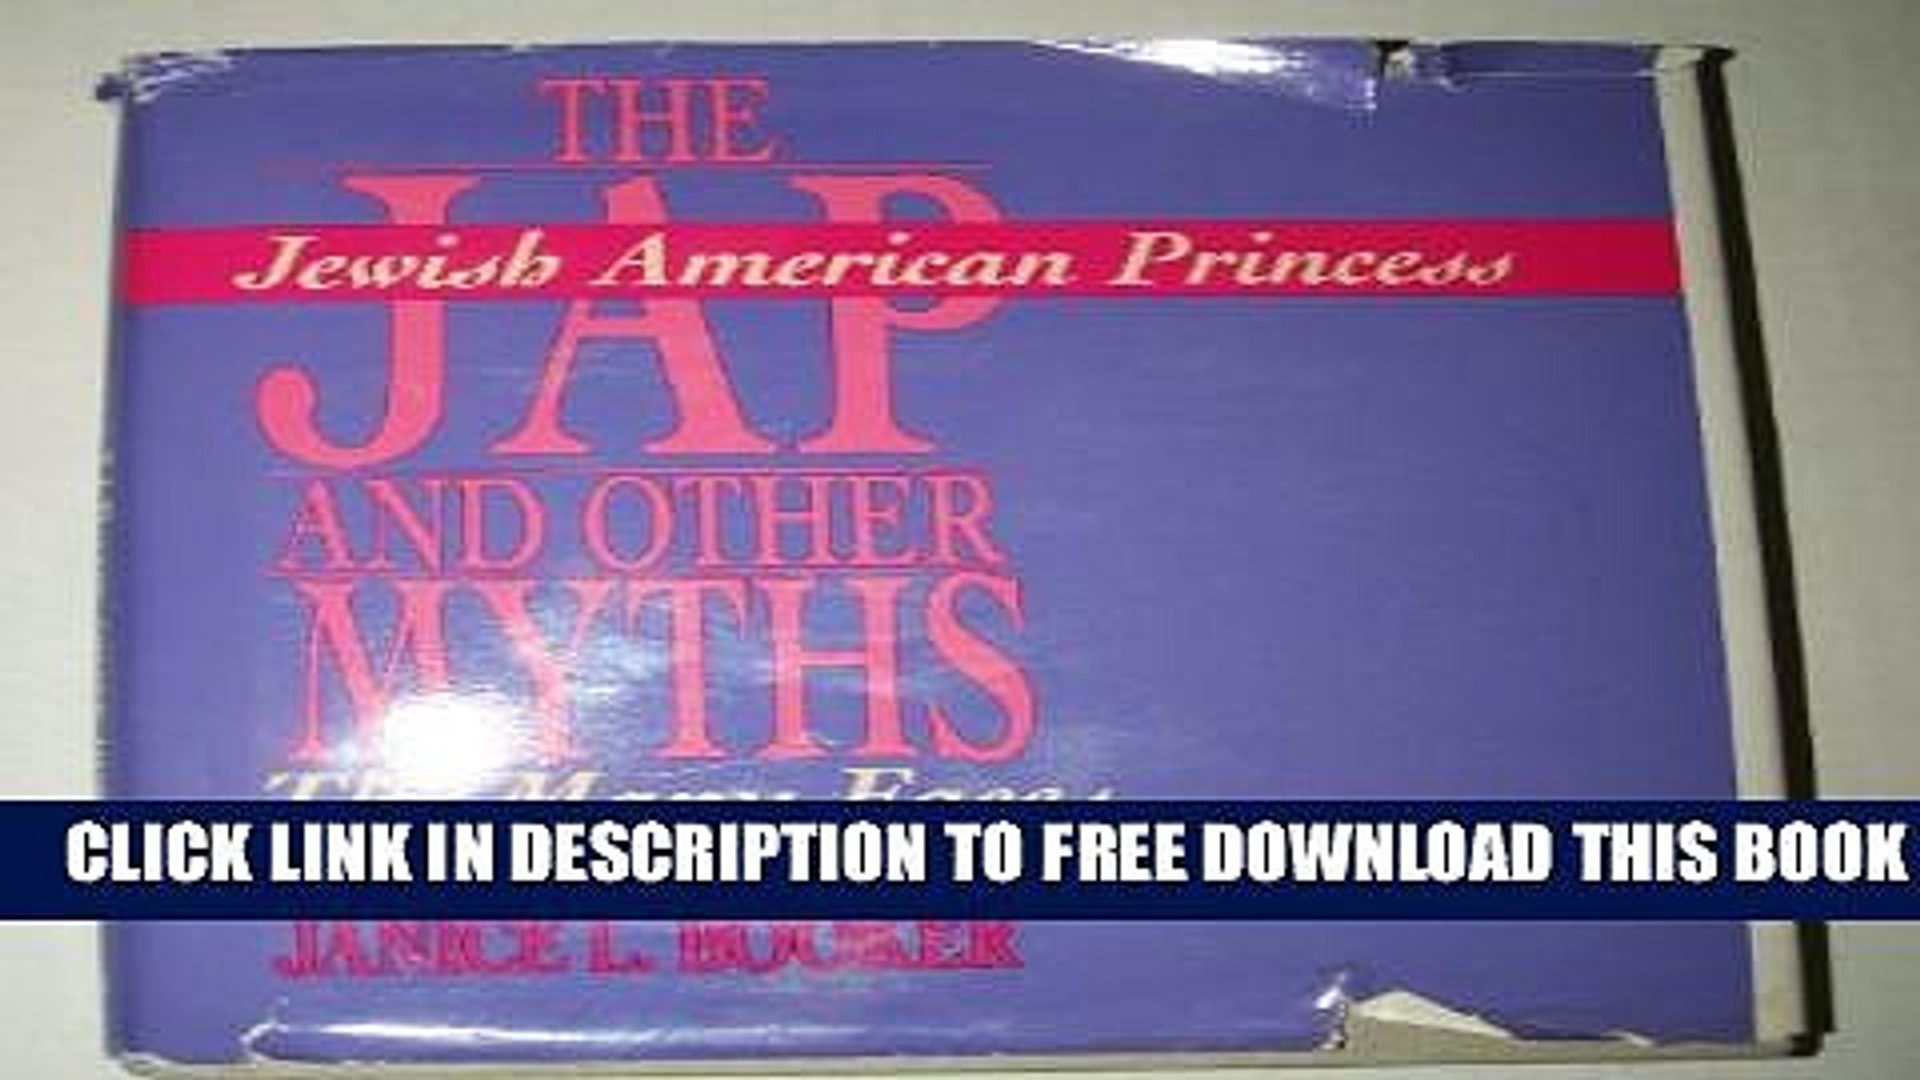 New Book The Jewish American Princess and other Myths: The Many Faces of Self-Hatred